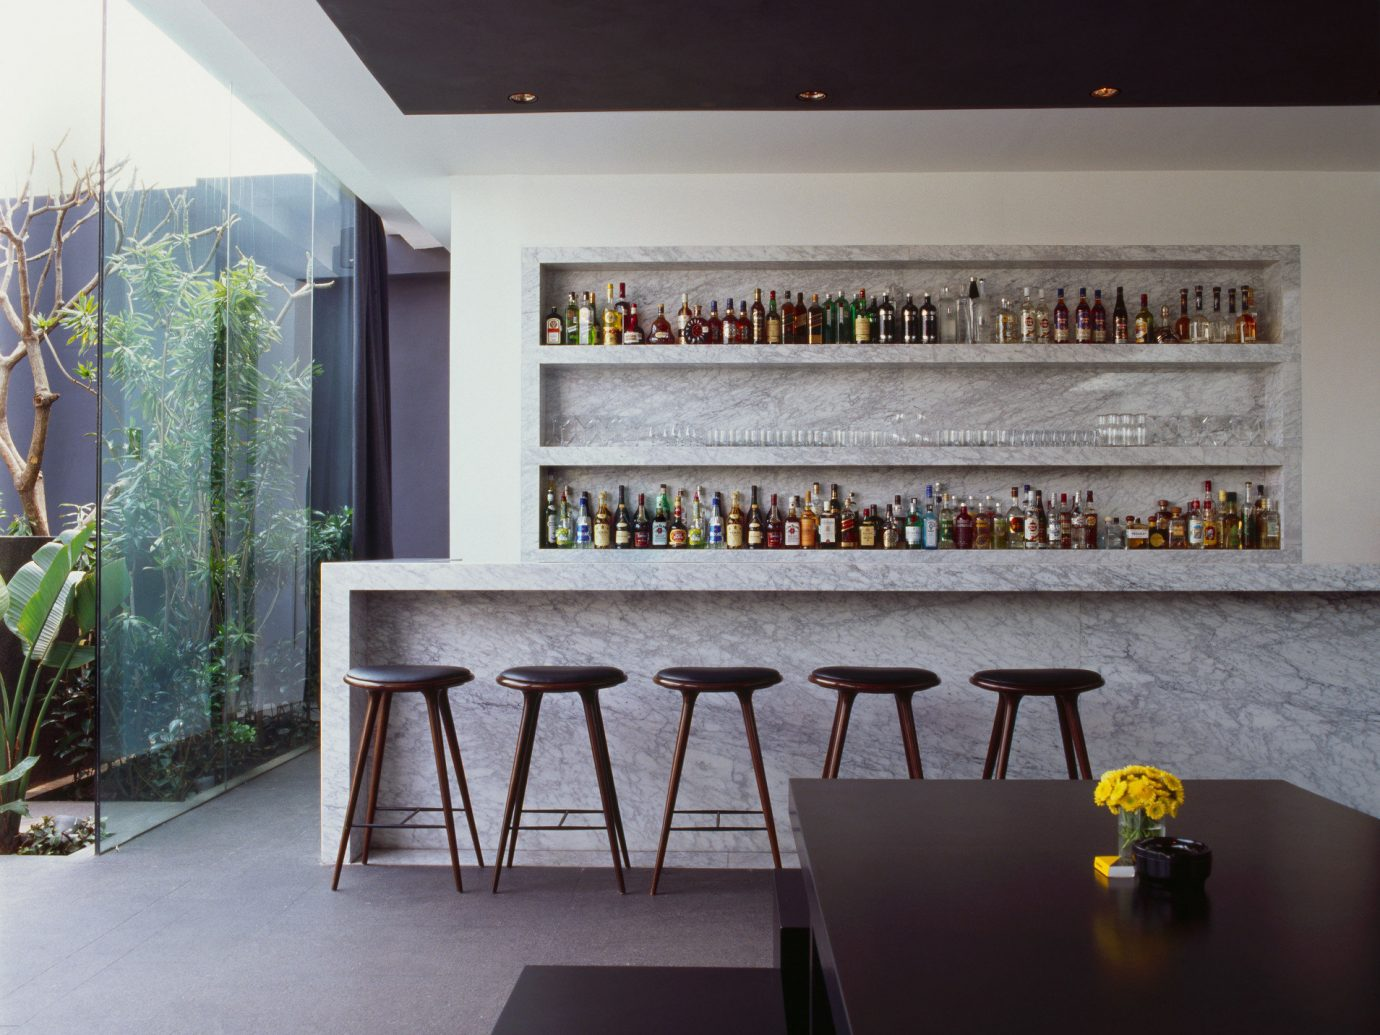 artistic artsy Bar bar seating chic cozy Greenery Hip Hotels Luxury Modern trendy view windows indoor floor room house wall Architecture interior design home living room Design wood window covering ceiling furniture